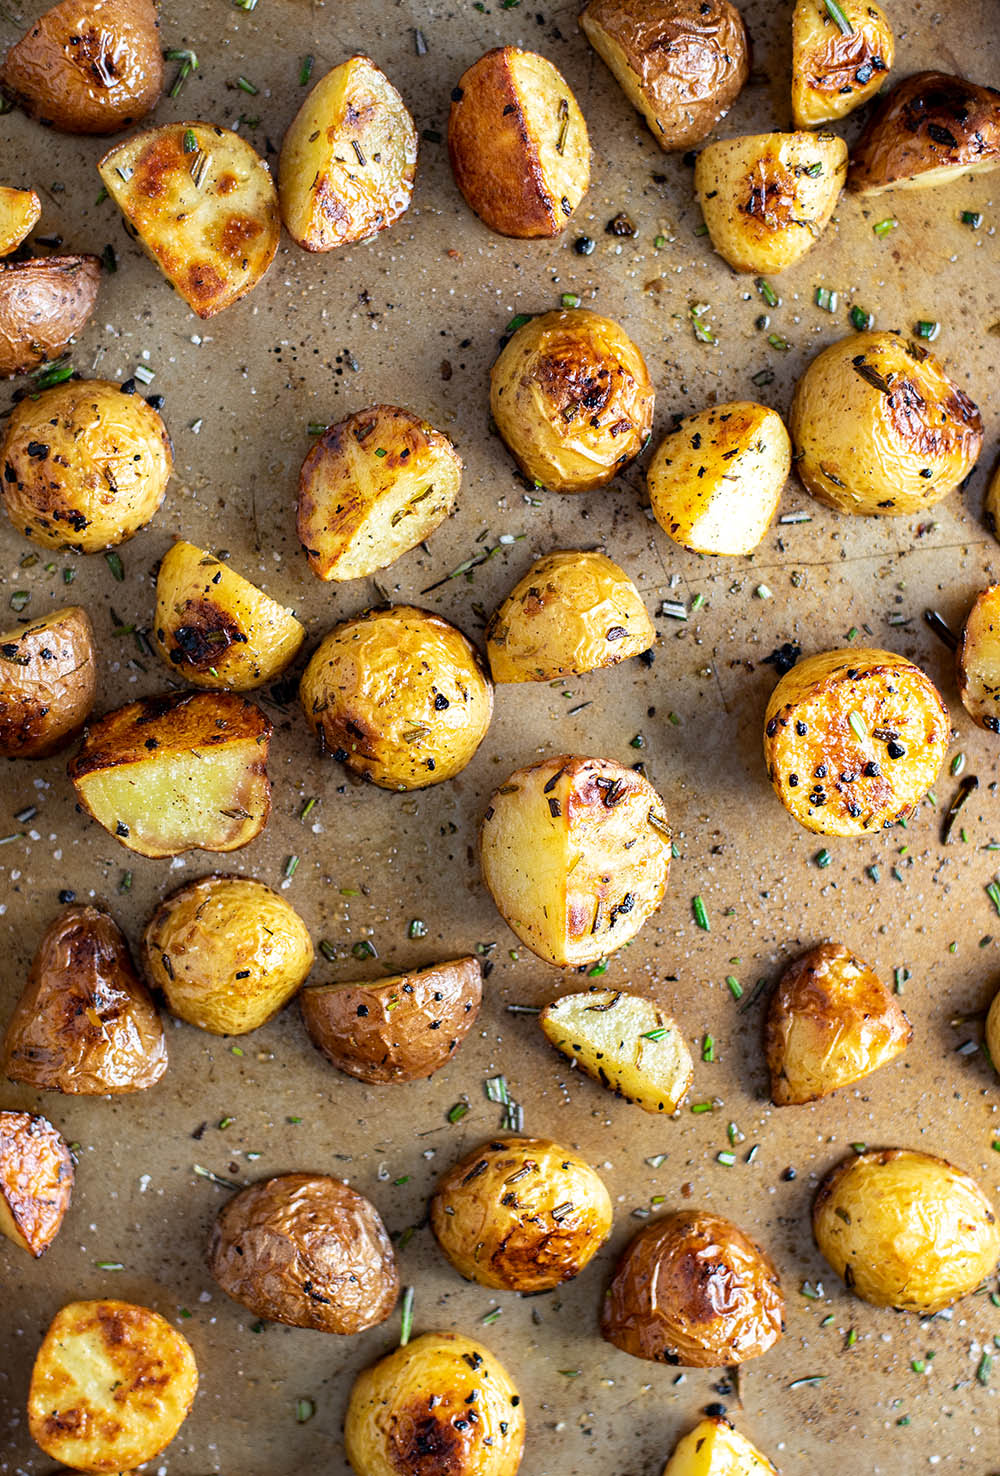 Roasted Baby Potatoes with Garlic Rosemary and Truffle Oil Recipe